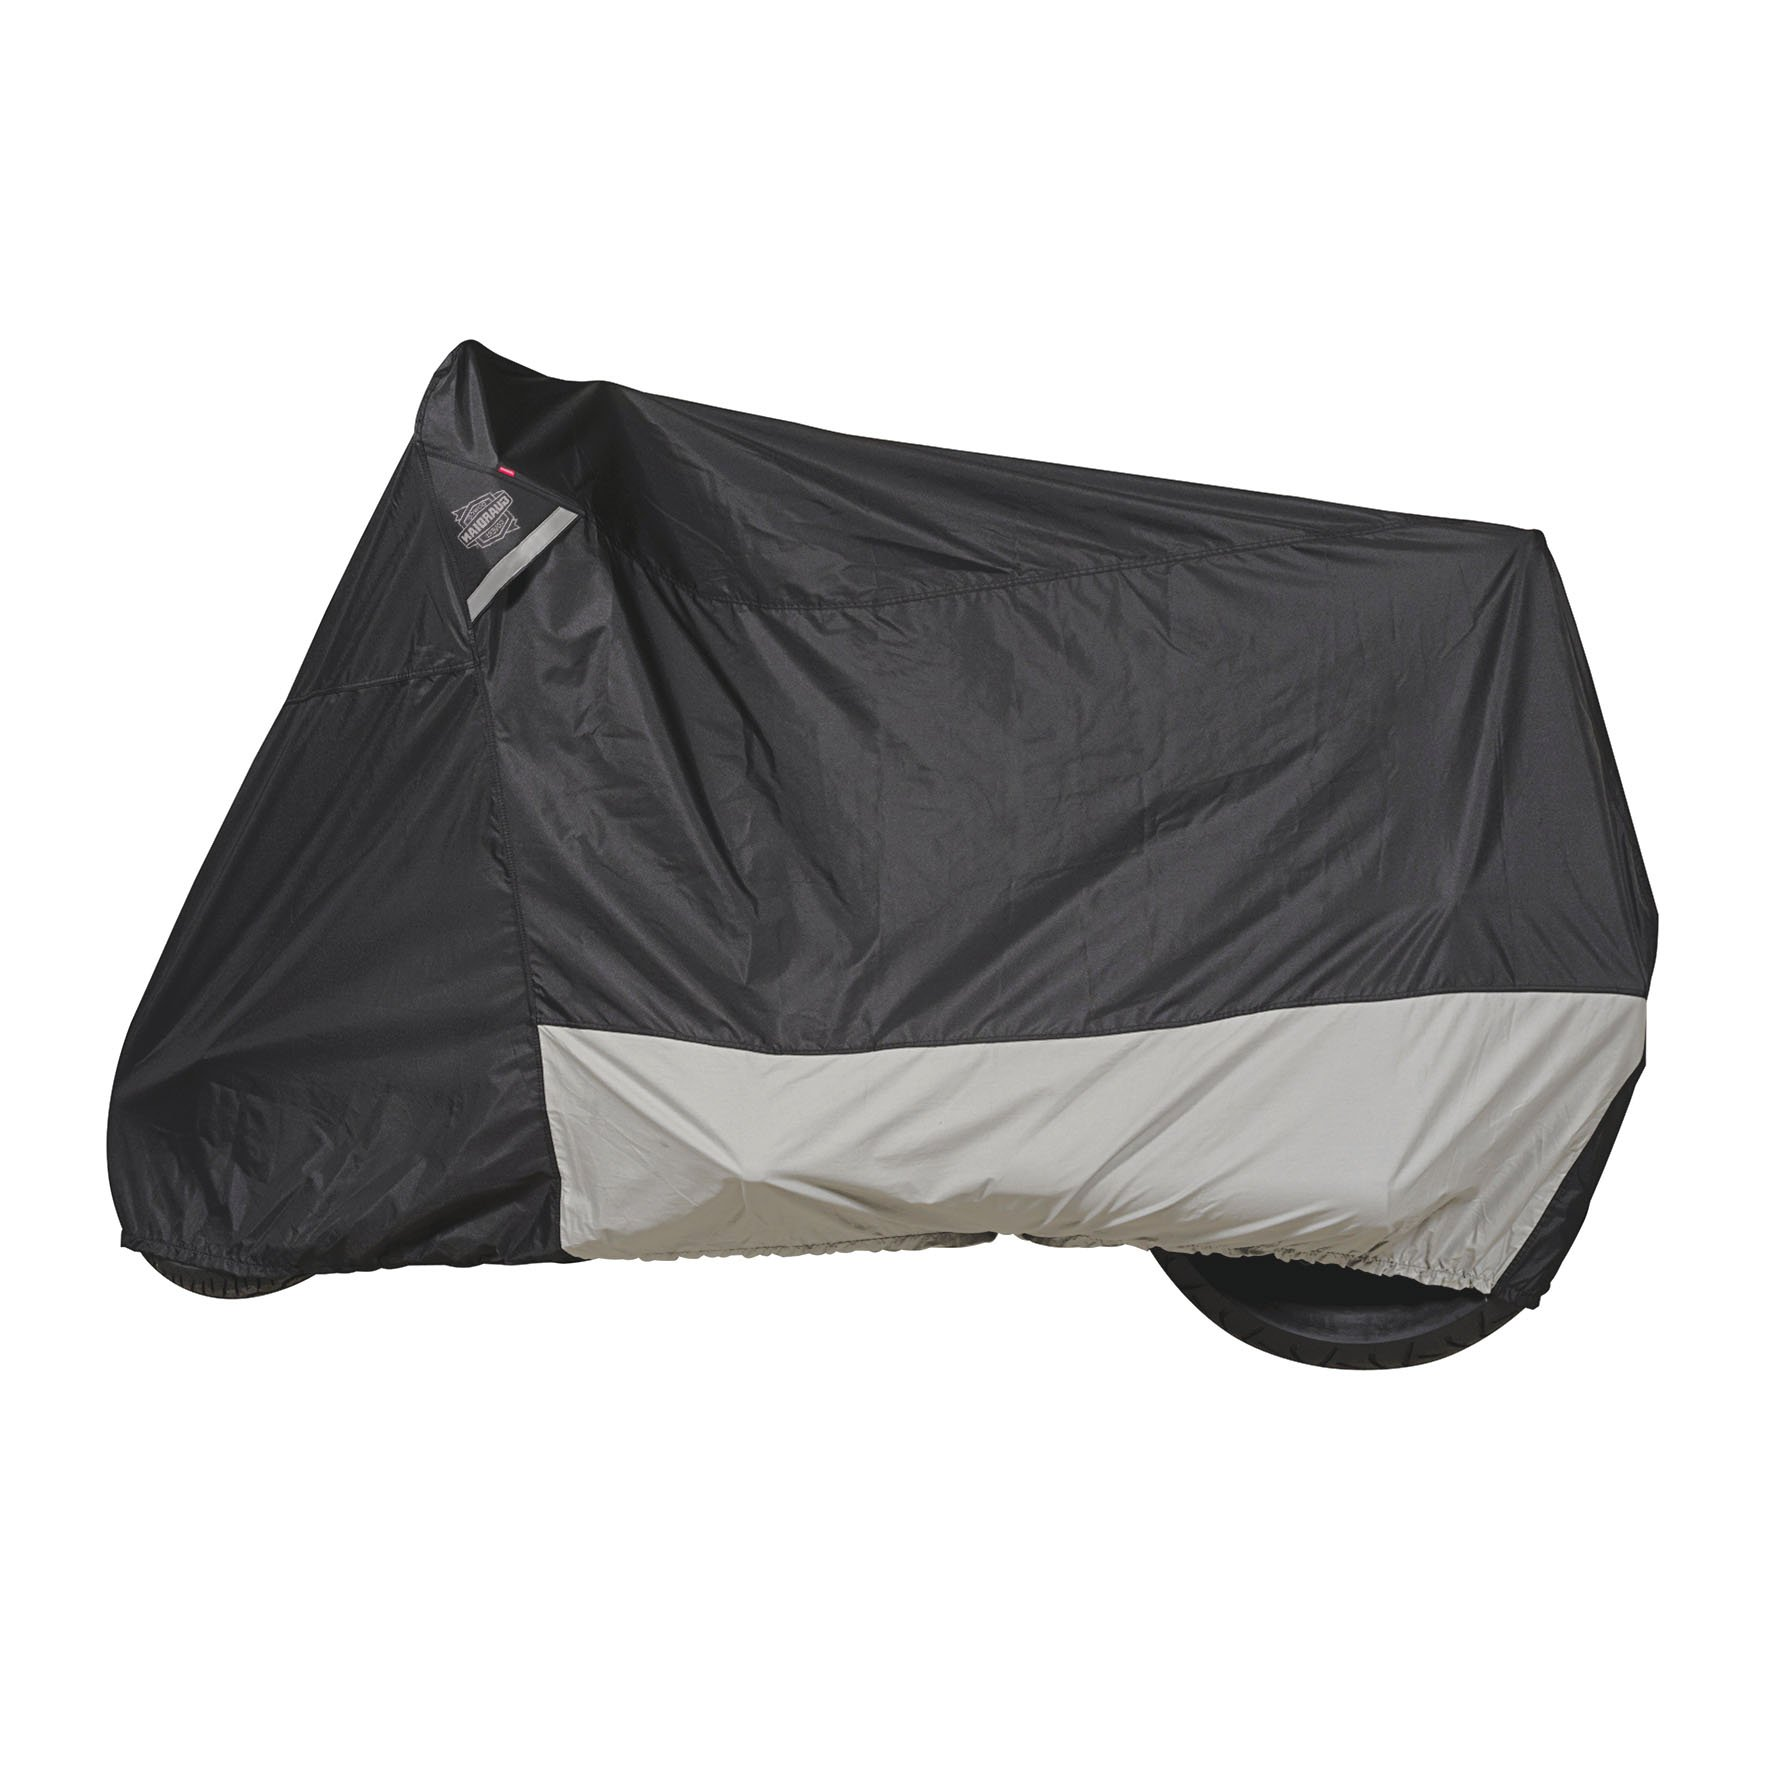 Guardian by Dowco 51223-00 WeatherAll Plus Indoor/Outdoor Waterproof Motorcycle Cover: Black, Cruiser by Dowco